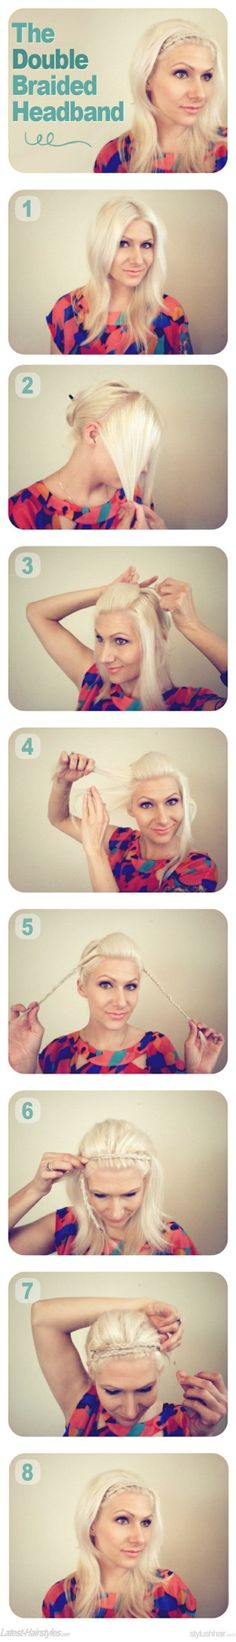 Double braided headband tutorial. by marcia